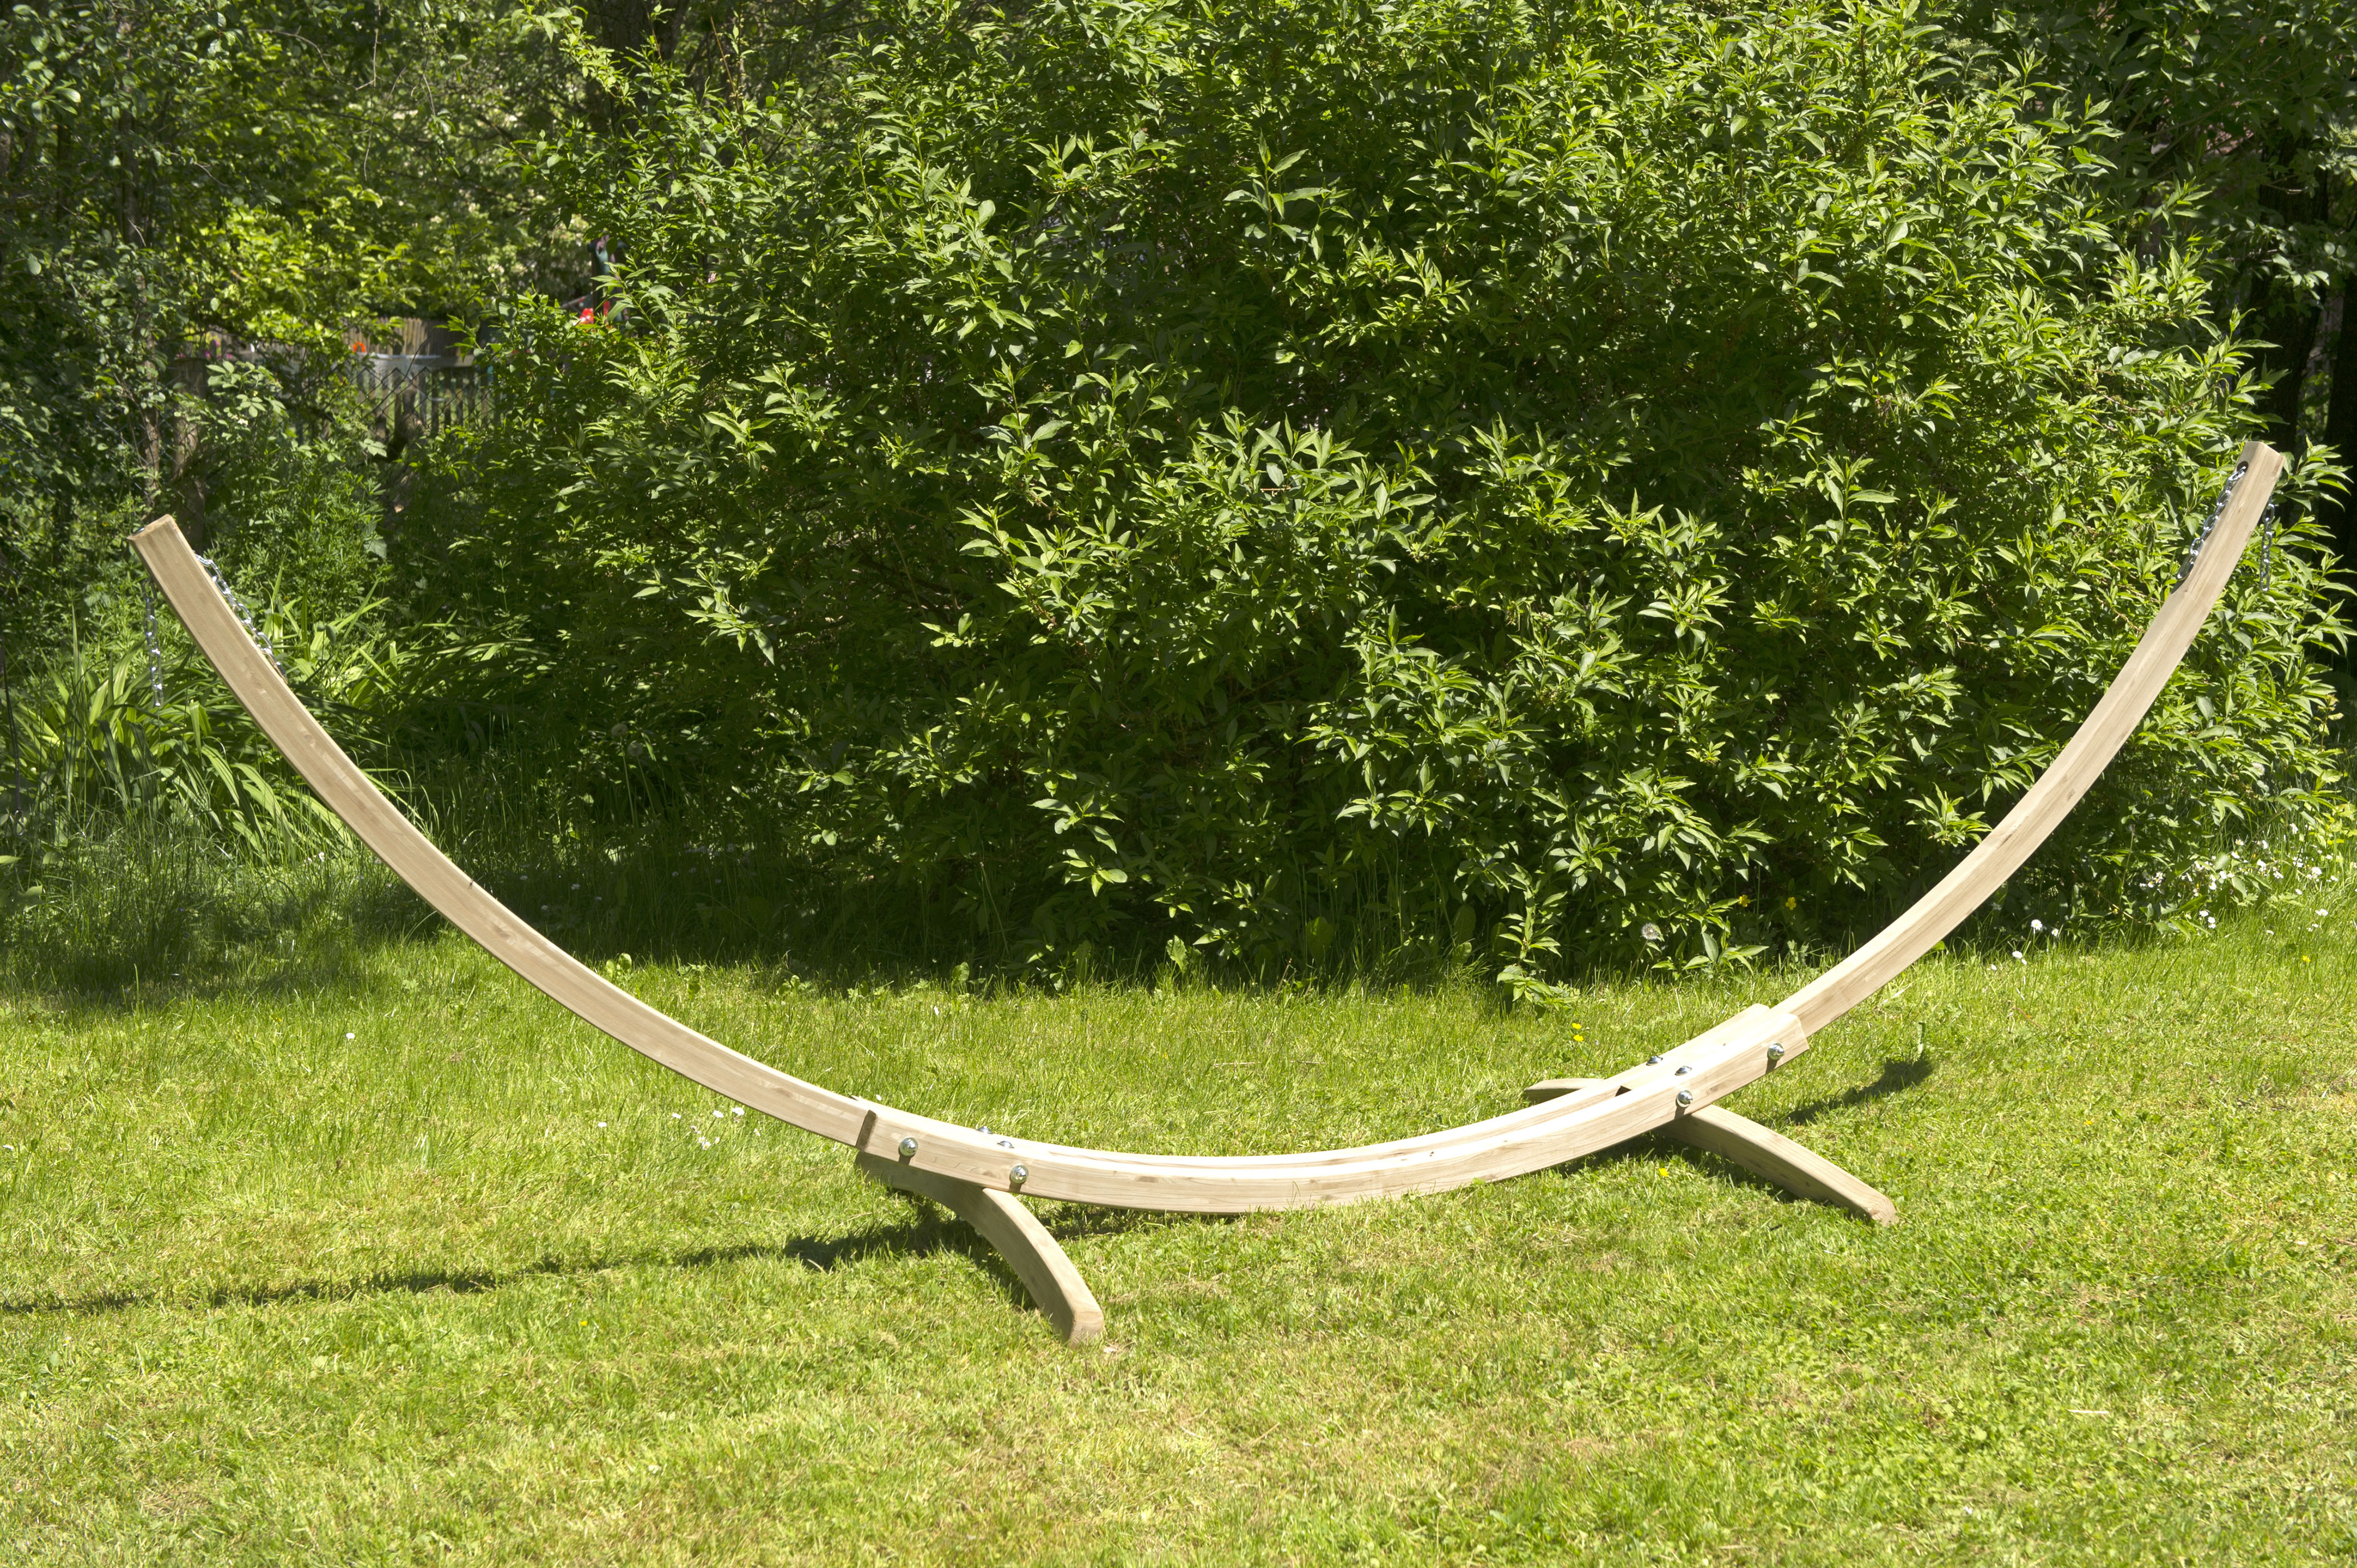 standing hammock and together lowes outdoor stand seating enjoying distinctive at also ideas hammocks exterior ga free accessories cotton sightly then stands as with wooden incredible decorating summer chair along wells